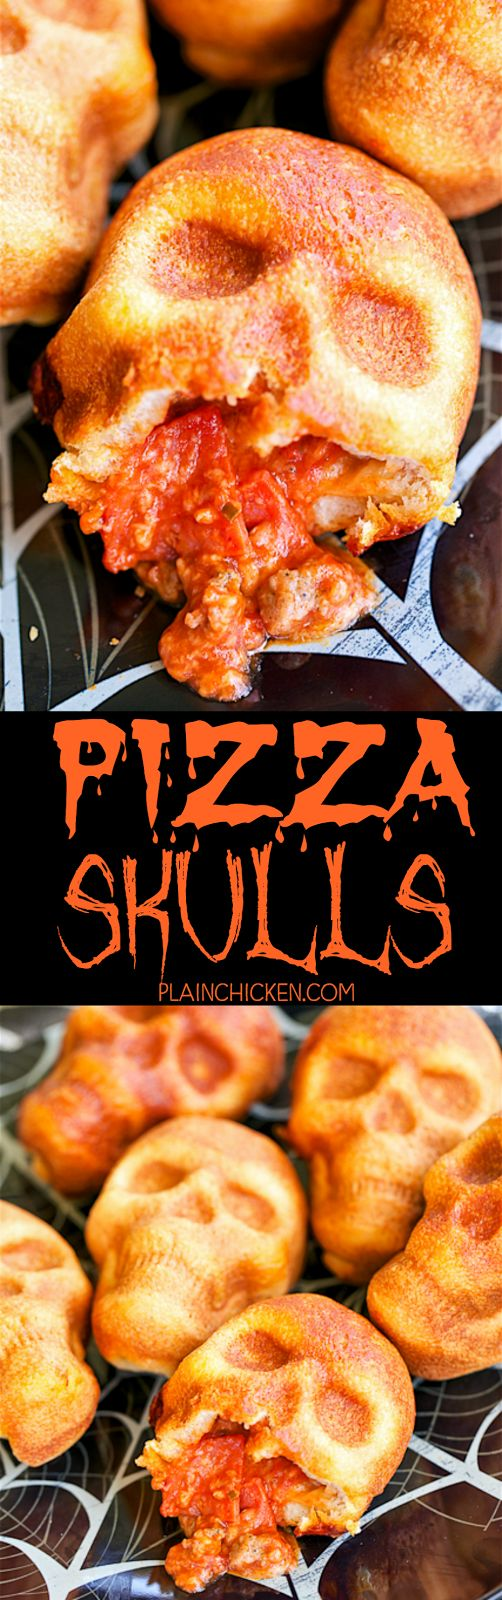 Pizza Skulls - pizza pockets baked in a skull pan. SO easy!! Can customize each pizza pocket to everyone's preference. Great for Halloween and The Walking Dead parties! Can bake and freeze for later!